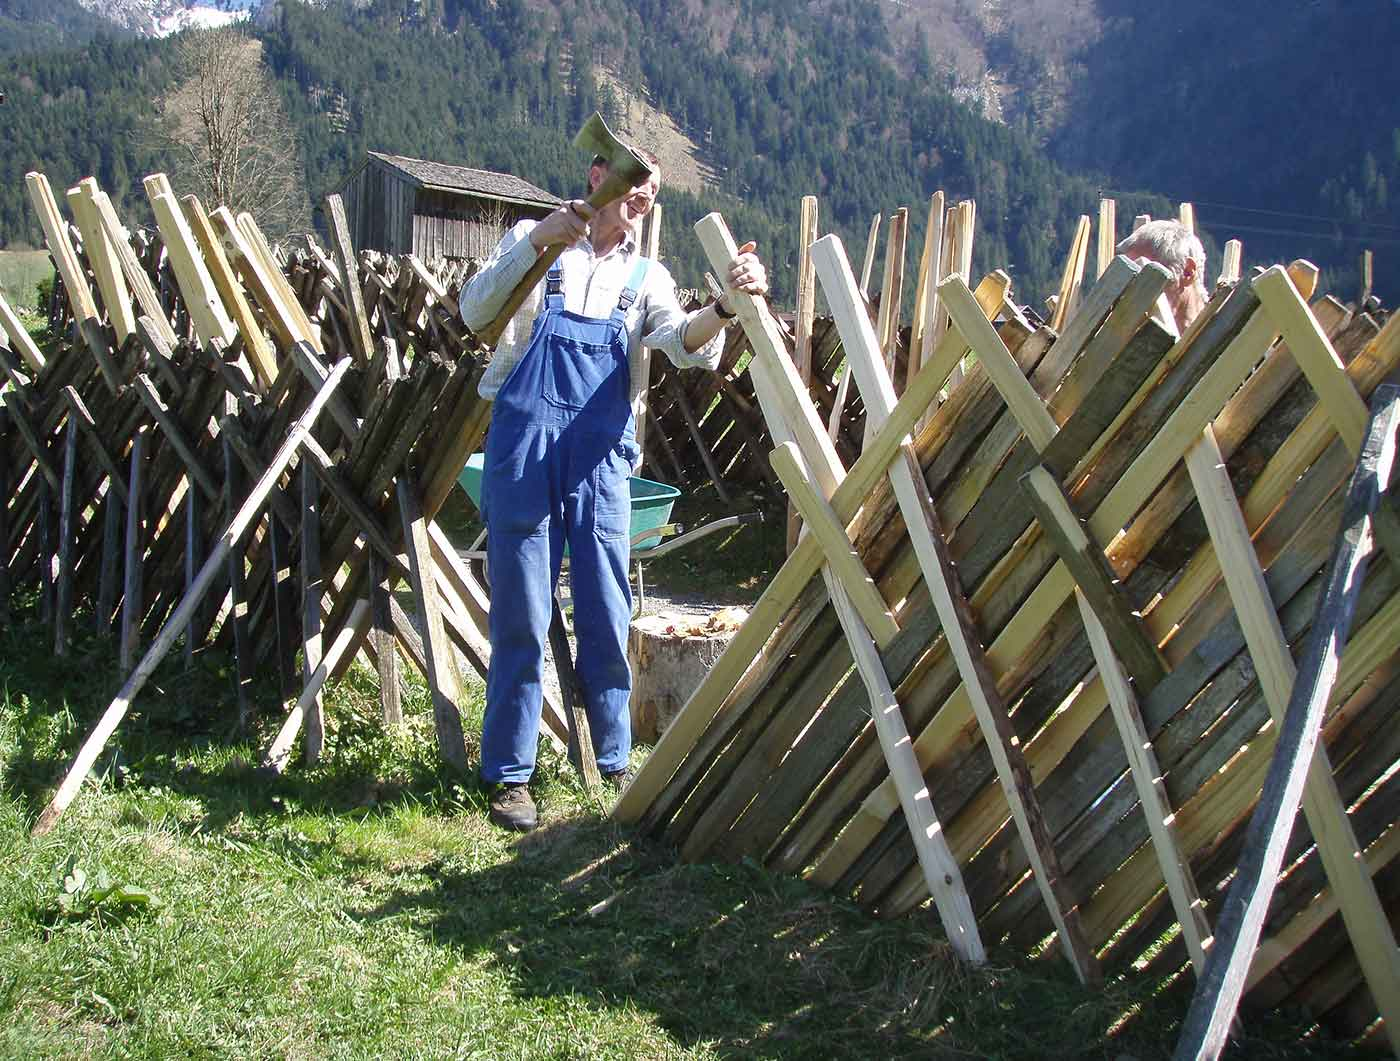 Repair of a traditional pasture fence at the Museum Arlerhof in Abtenau.